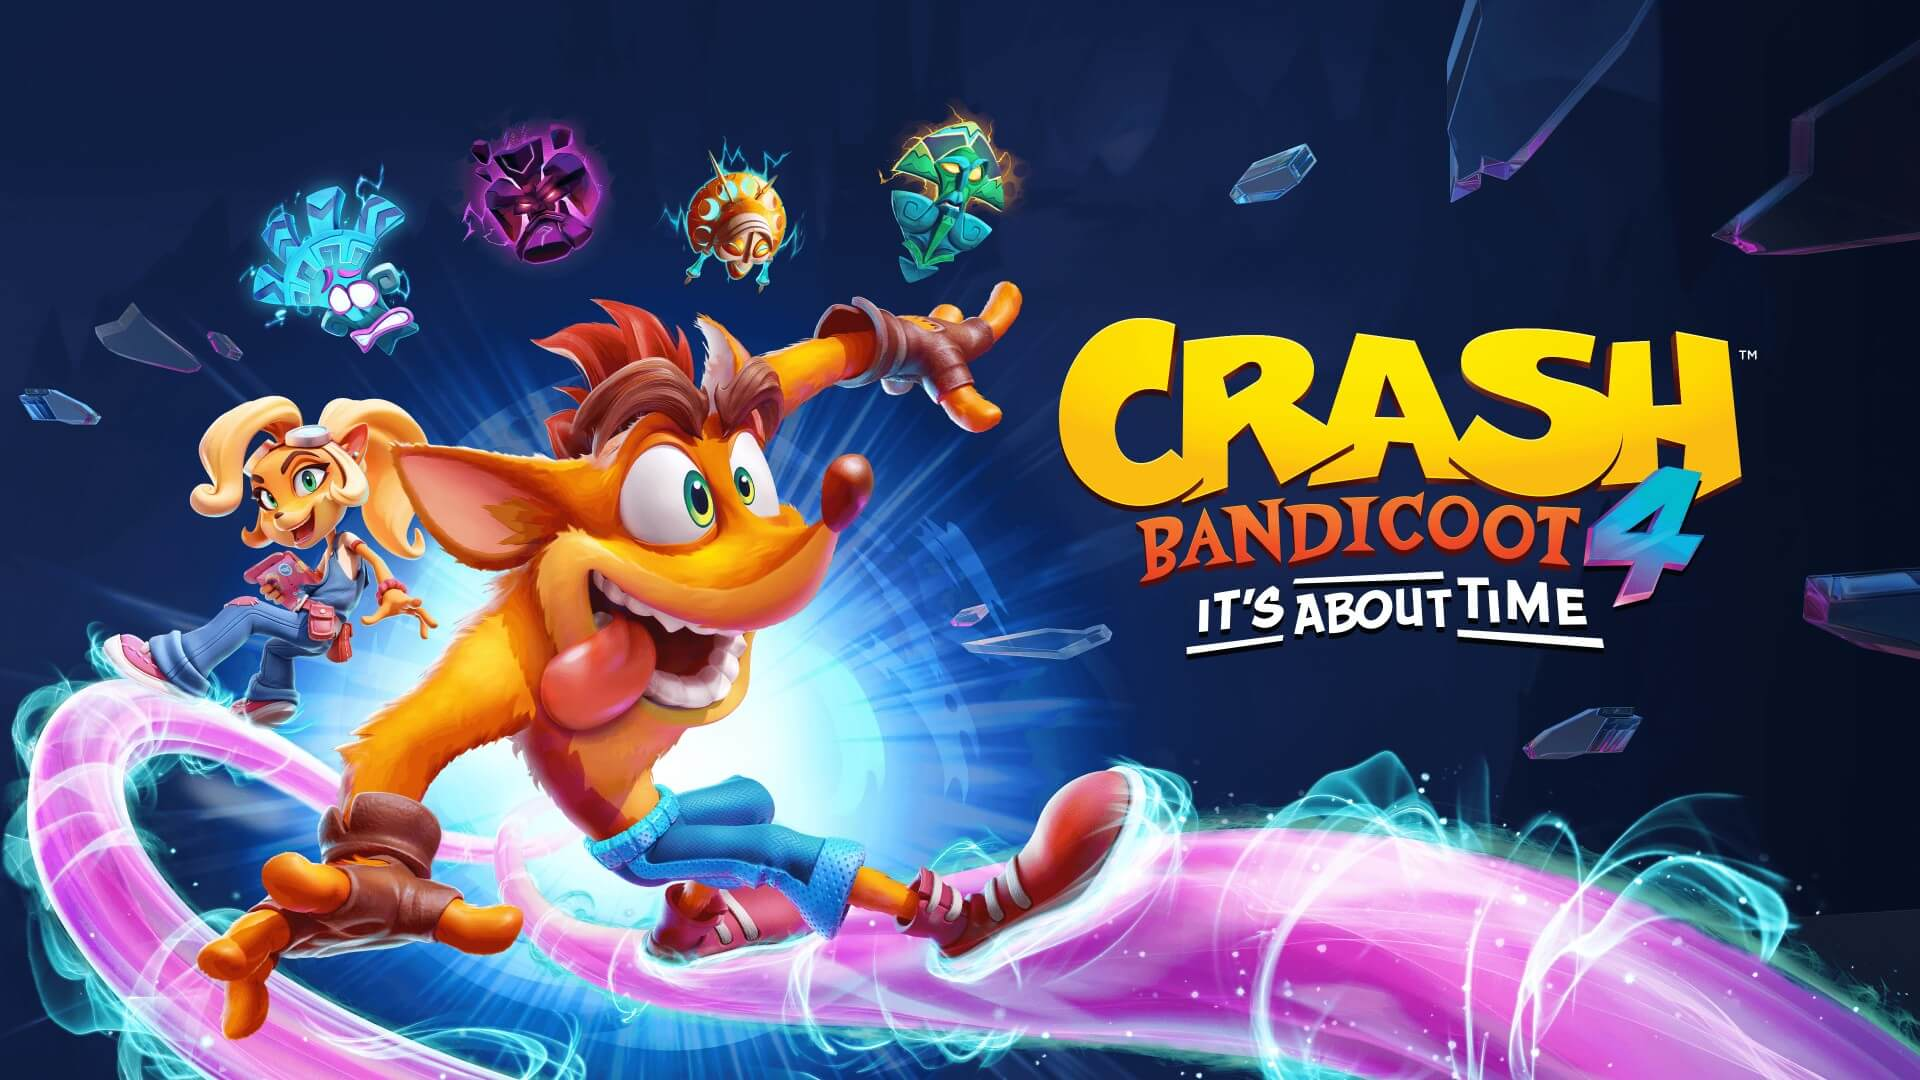 Crash Bandicoot 4: It's About Time - New Gameplay Revealed